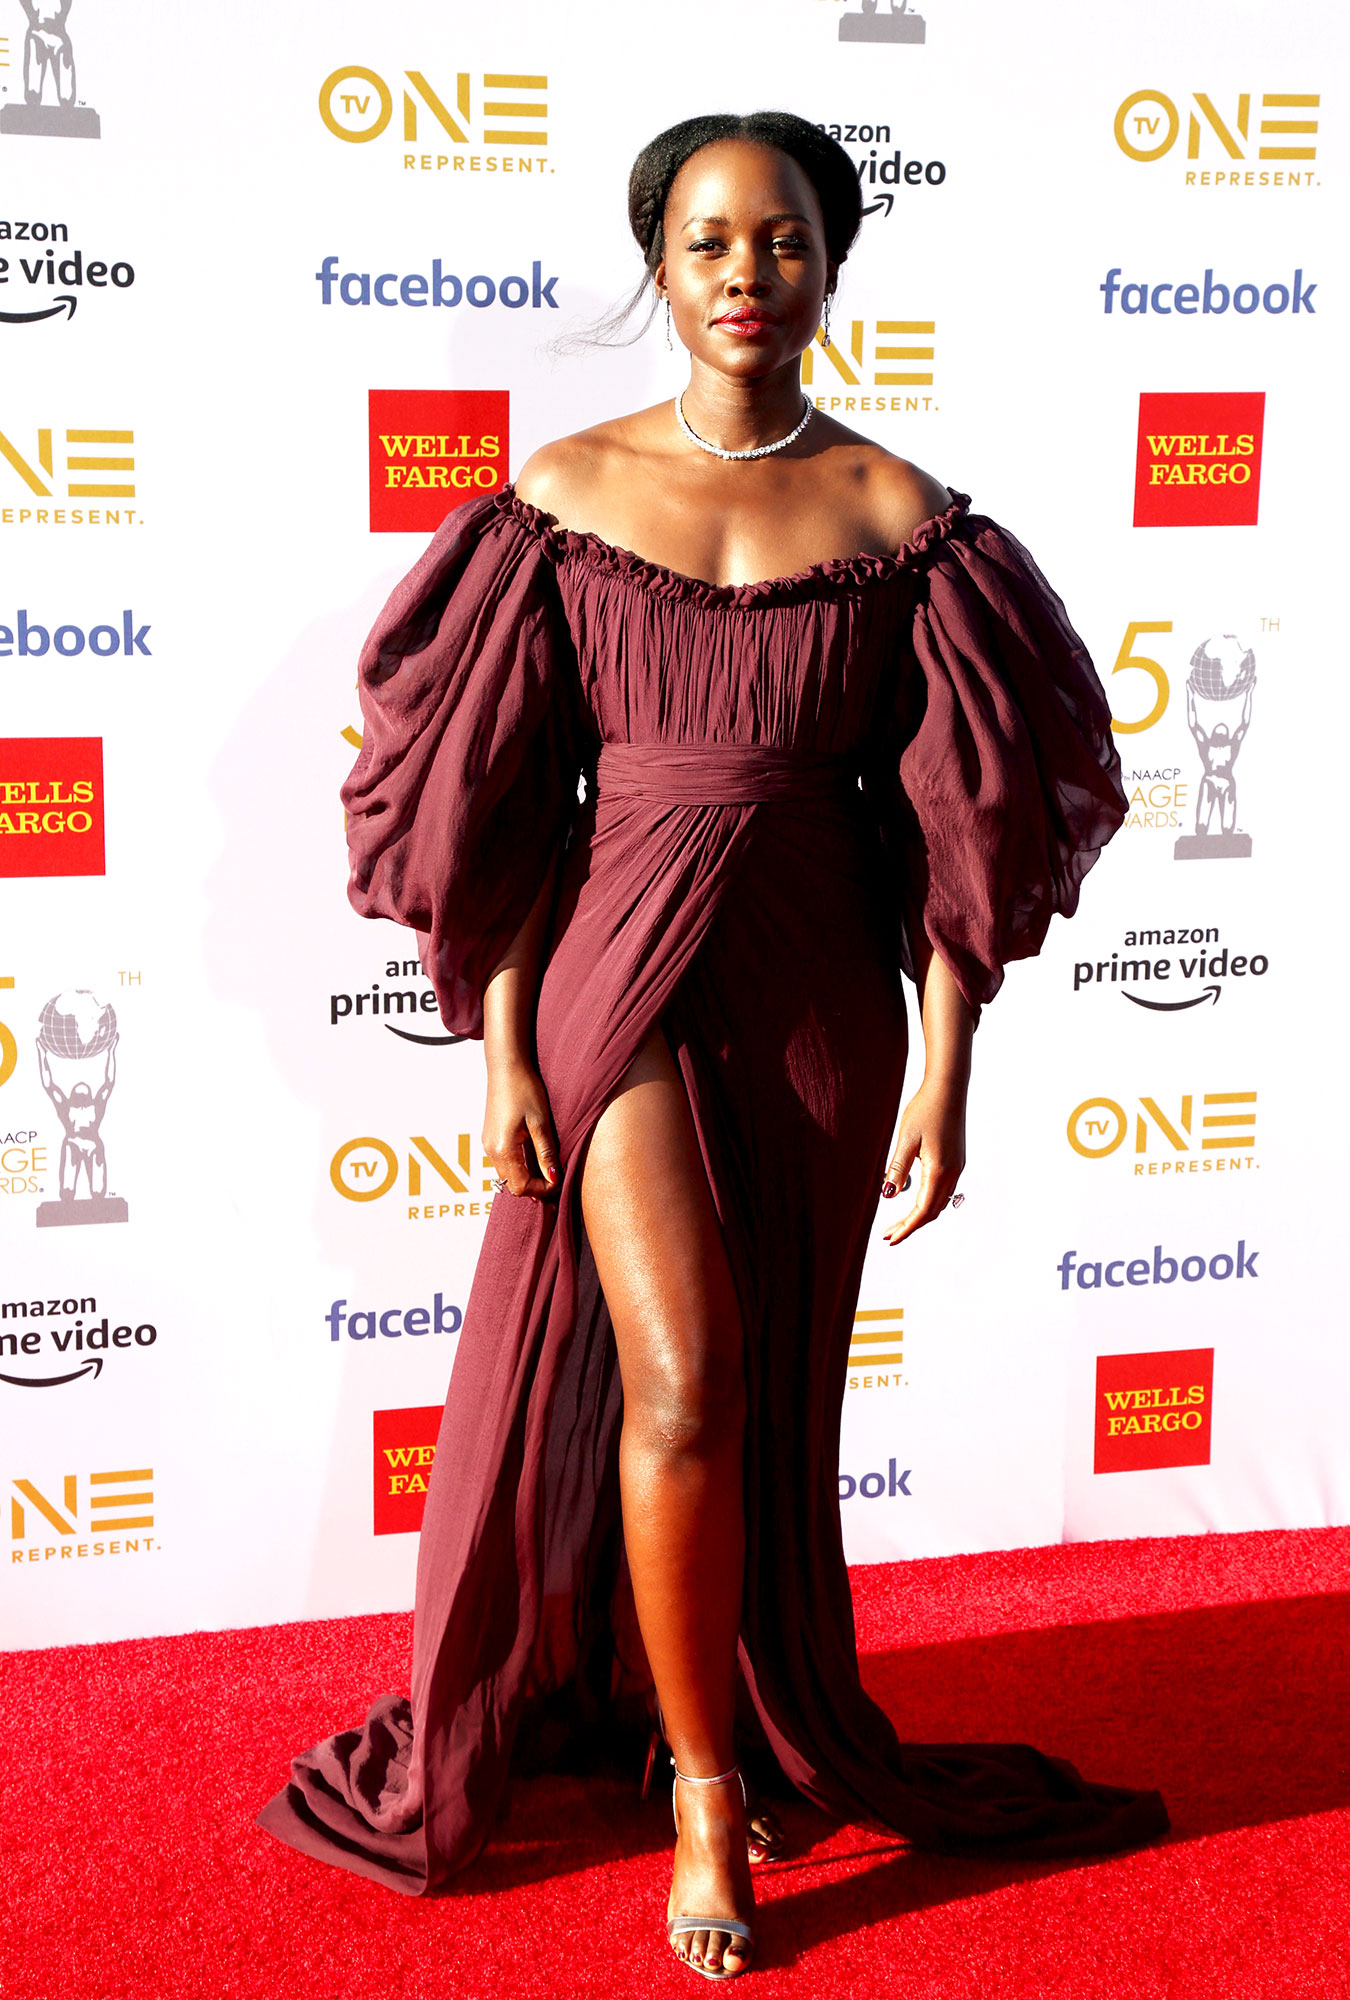 Lupita Nyong'o See the Stars at the NAACP Image Awards - Wearing an off-the-shoulder Giambattista Valli gown with a thigh-high slit.